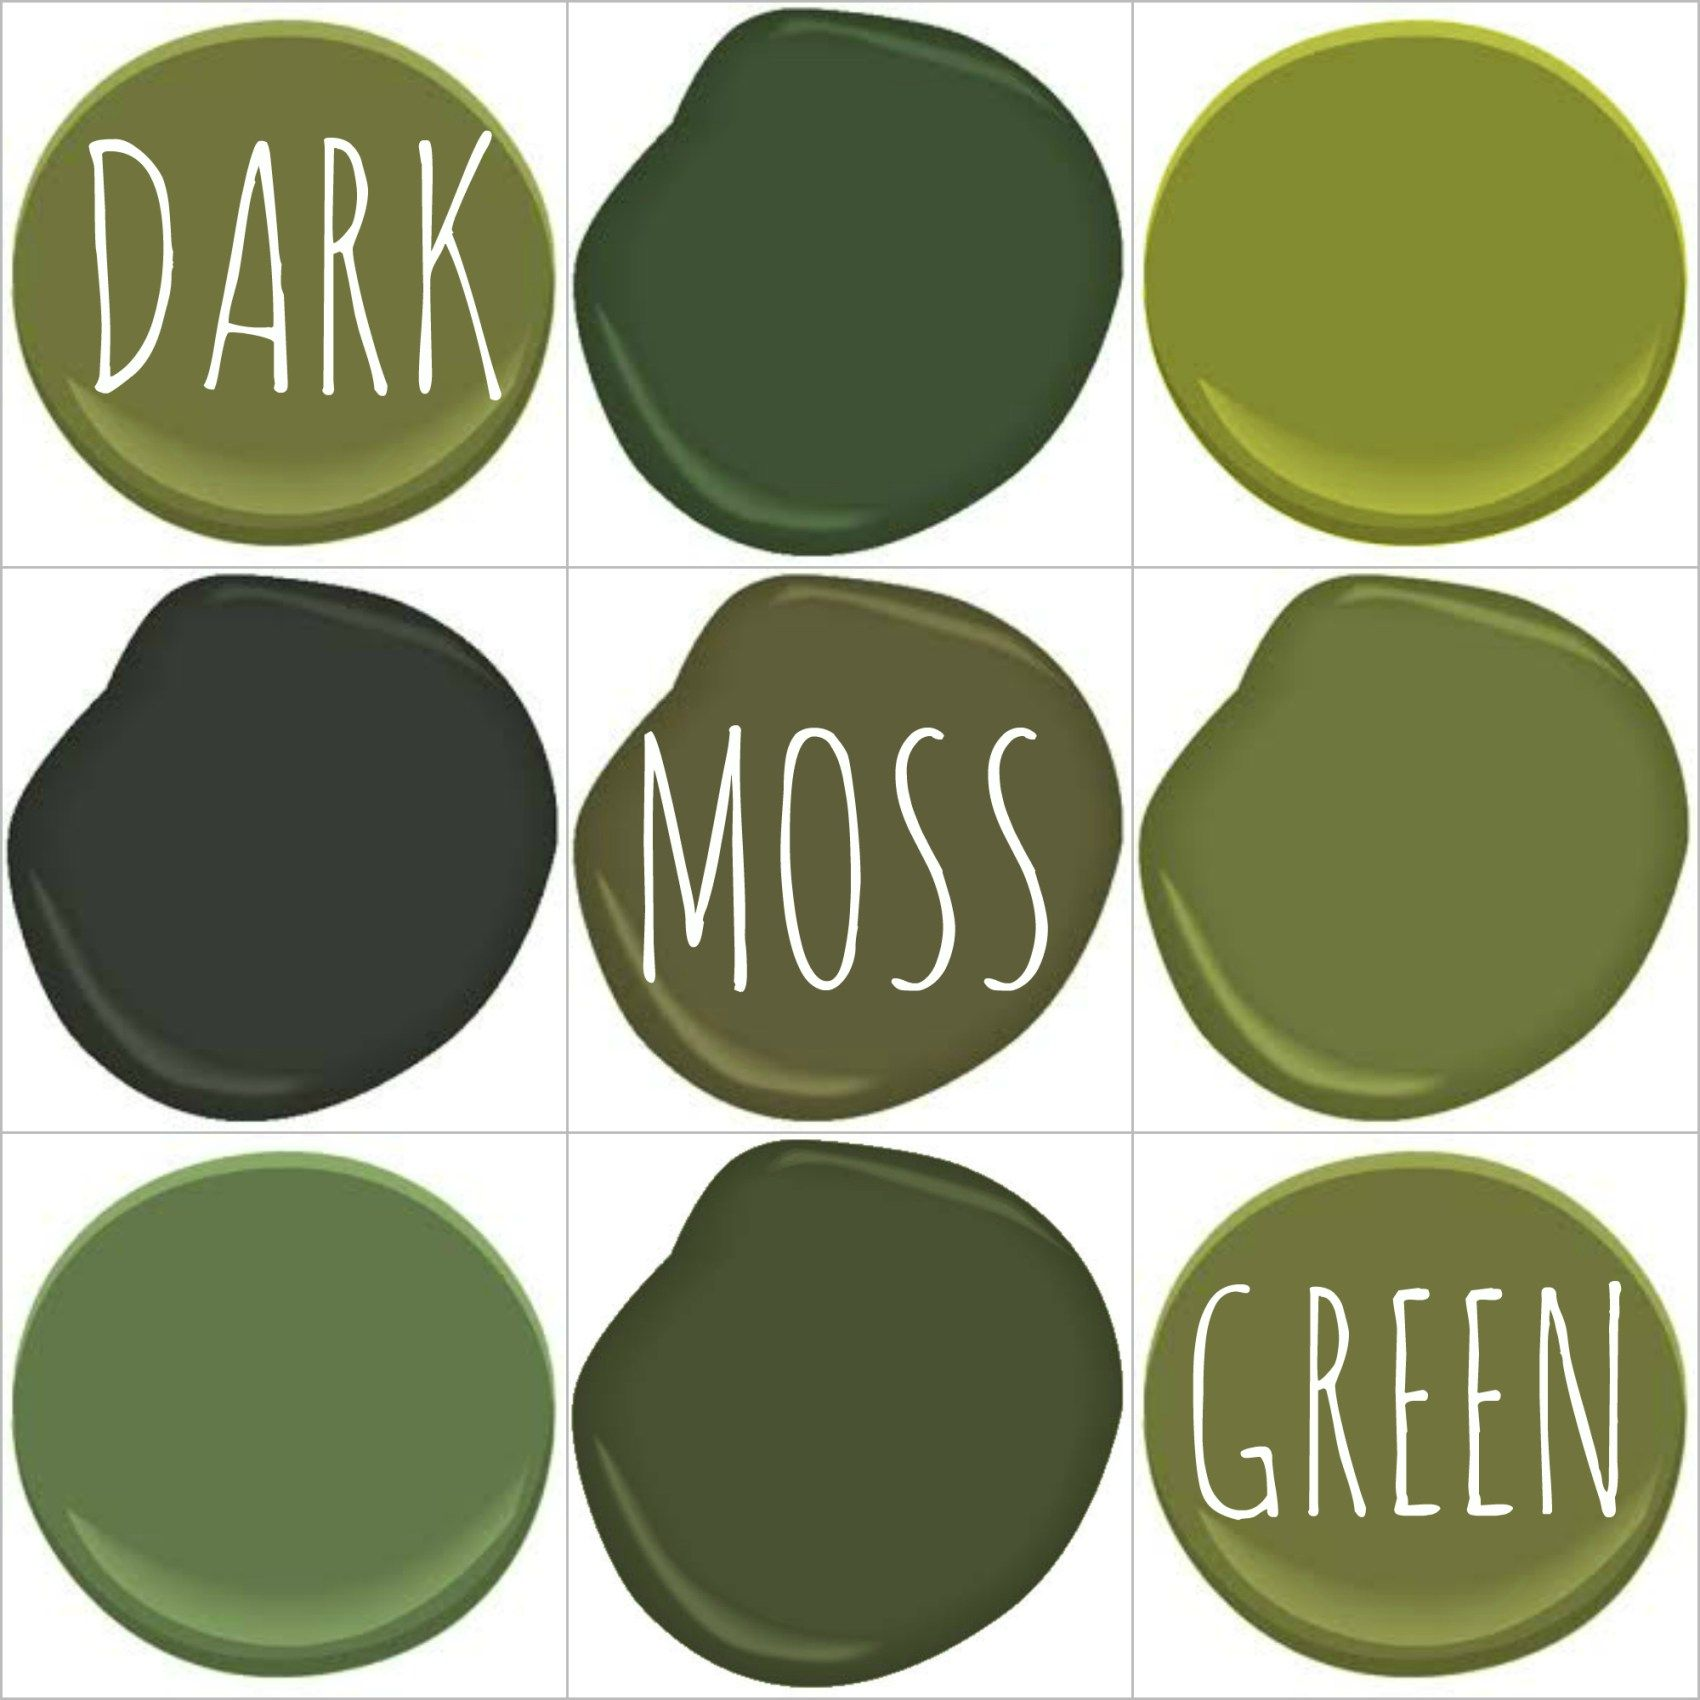 Moss Green Paint Colors: COLOR ON TREND – DEEP MOSSY OLIVE GREEN